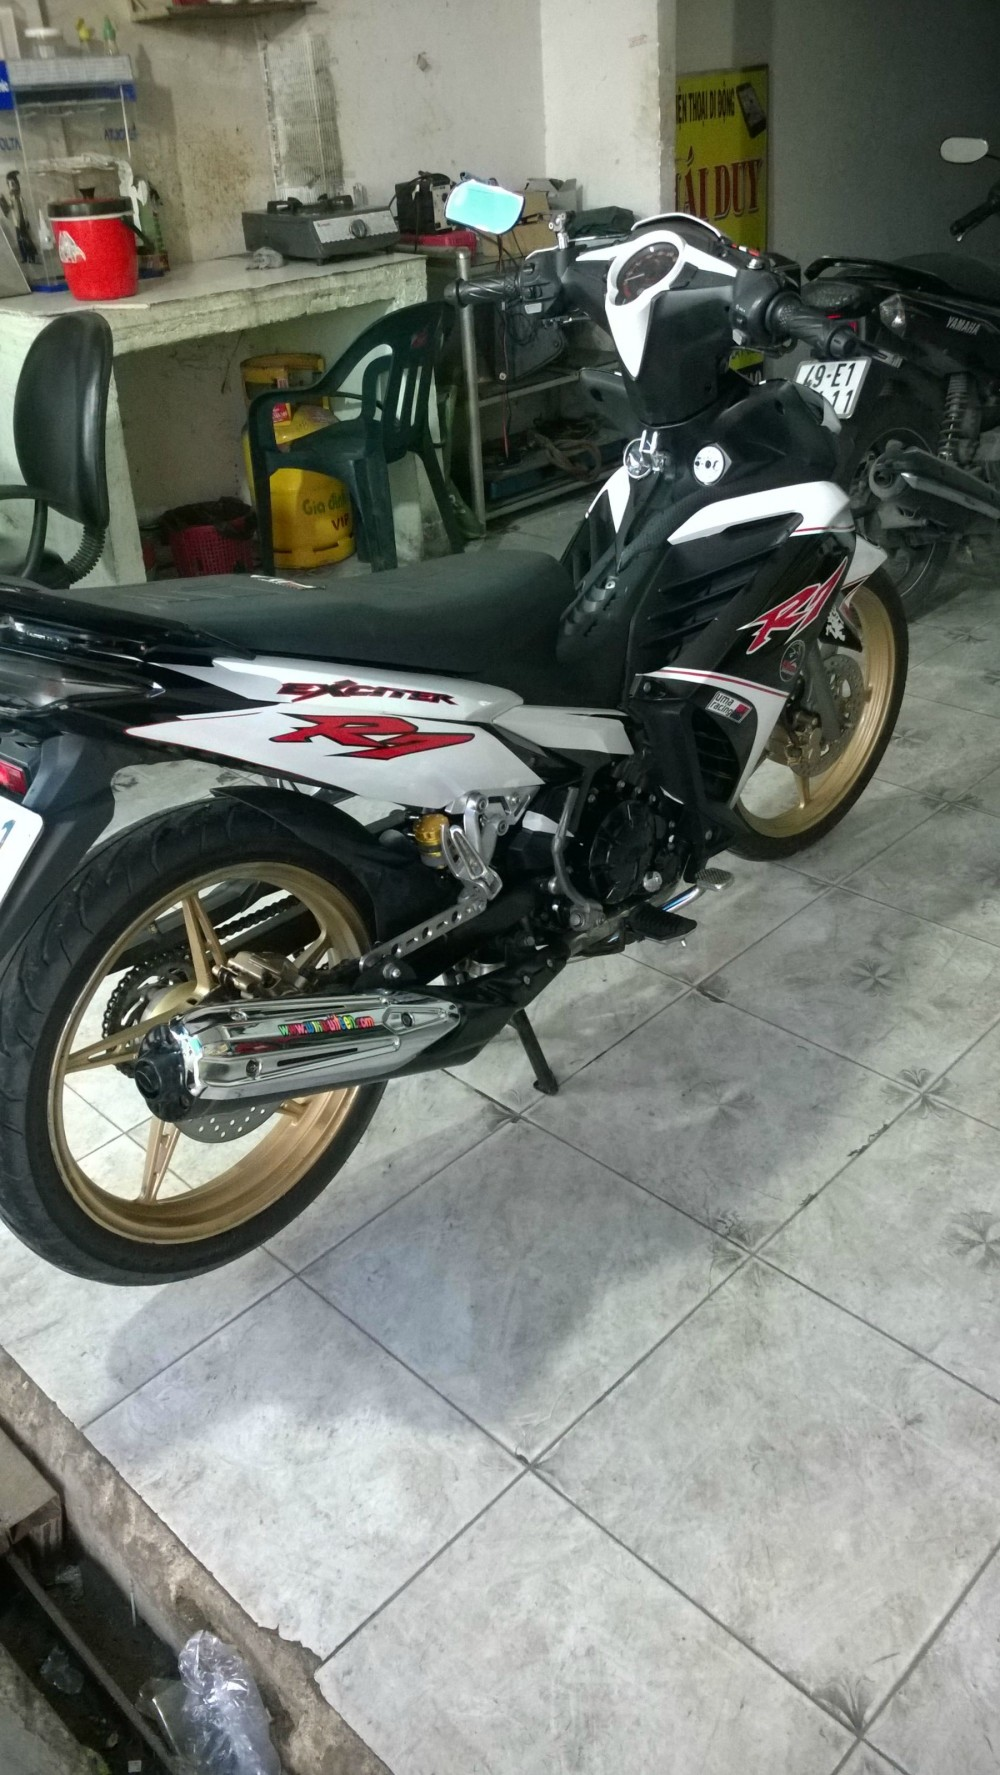 Exciter dk 42012 can ban hoac GL - 2